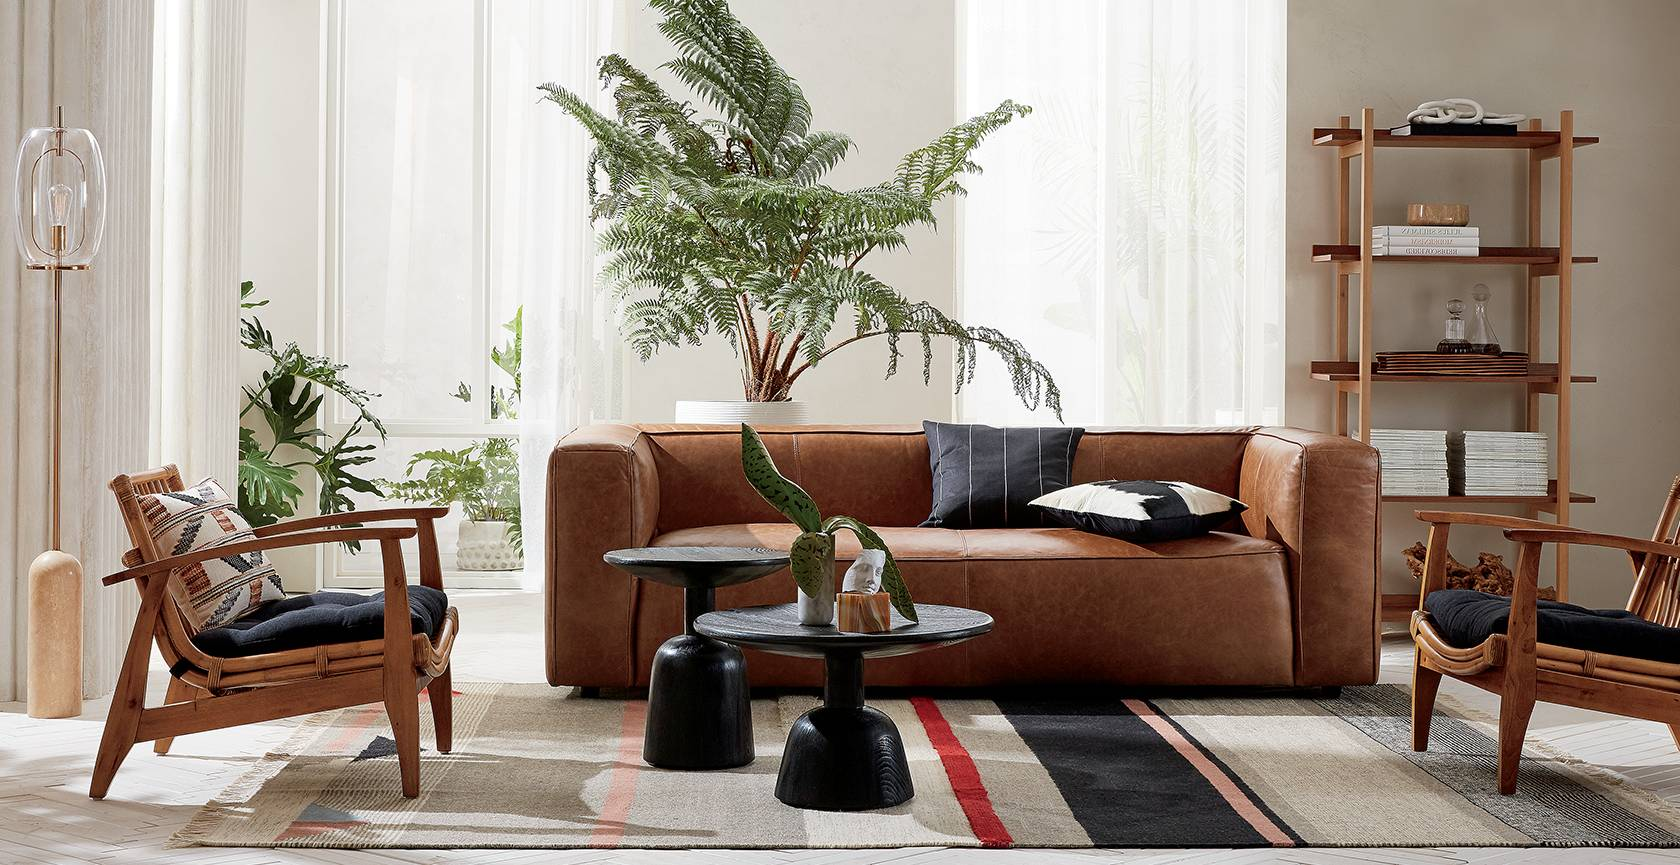 Modern Furniture And Home Decor Cb2 - Colorful-home-interior-on-portland-road-in-london